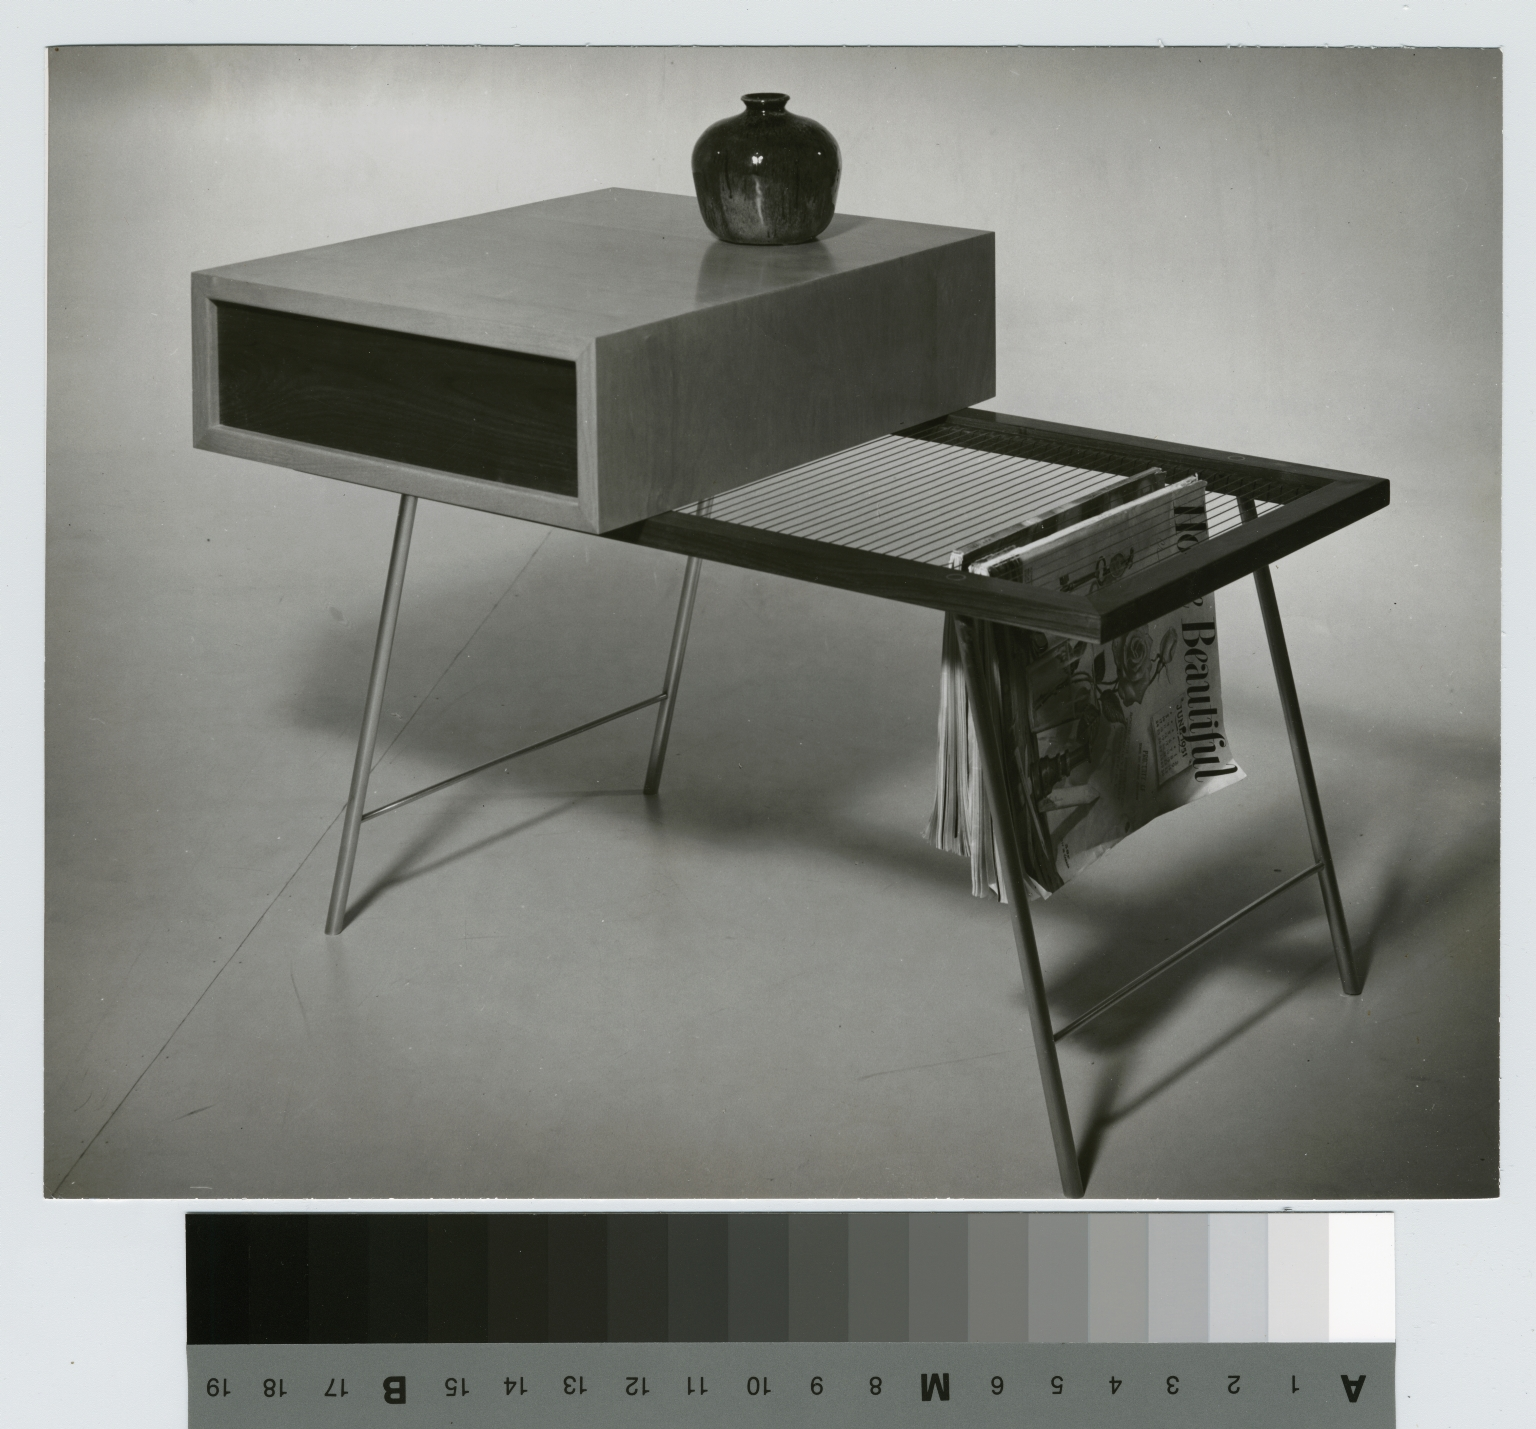 Wood coffee table with wire magazine rack, School for American Craftsmen, Rochester Institute of Technology